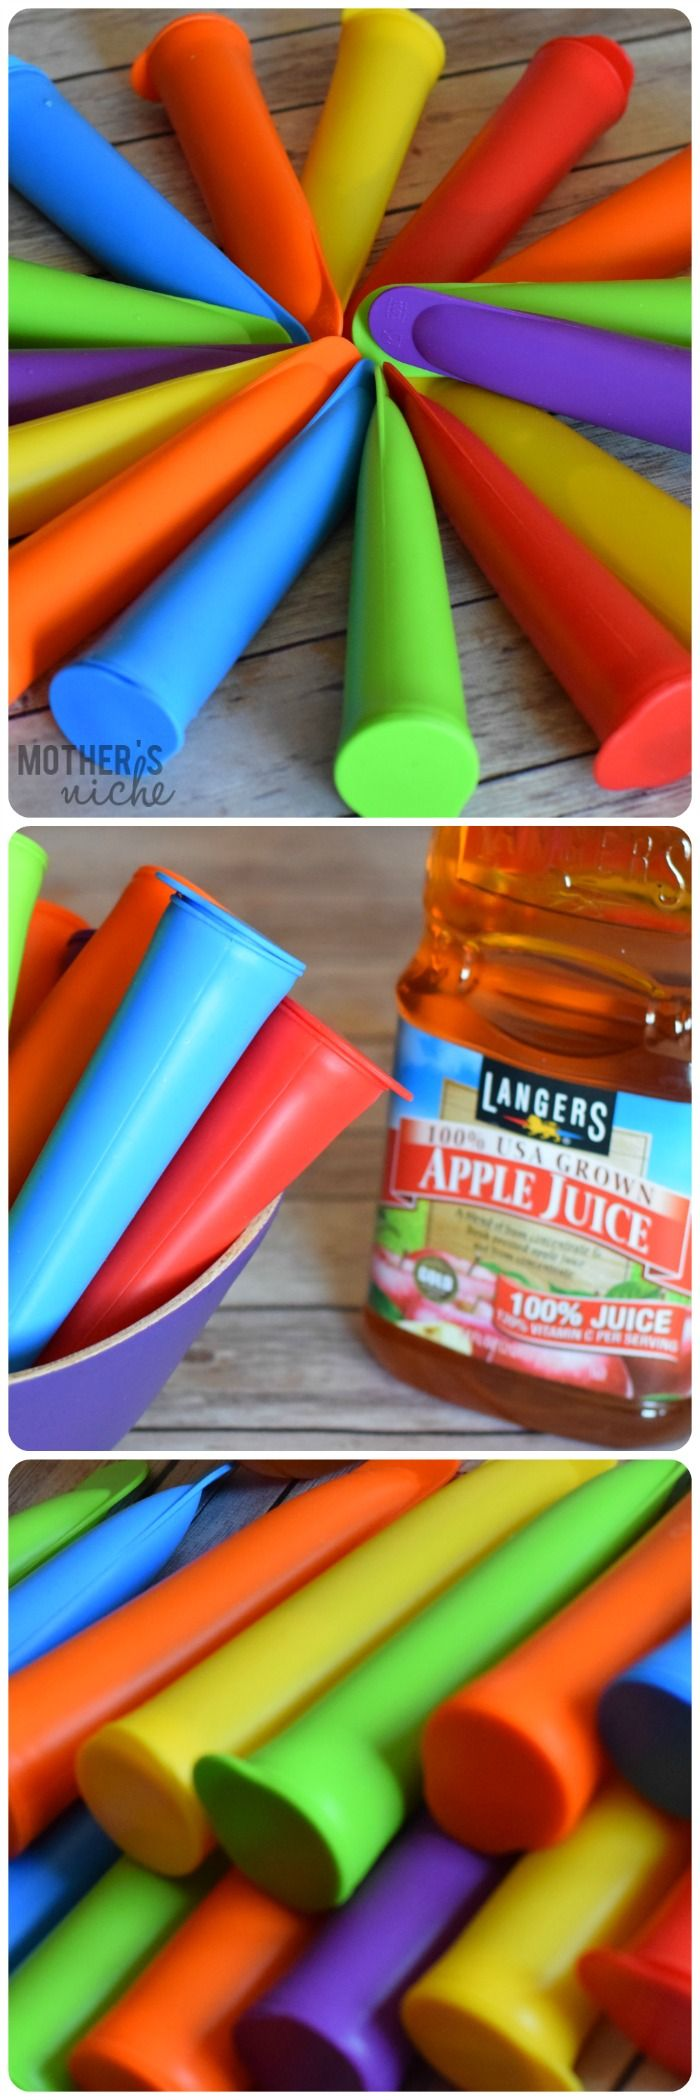 "Make your own ""otter pops"" this summer with 100% juice and use these awesome reusable ice pop molds! Also, 6 awesome homemade popsicle recipes!"